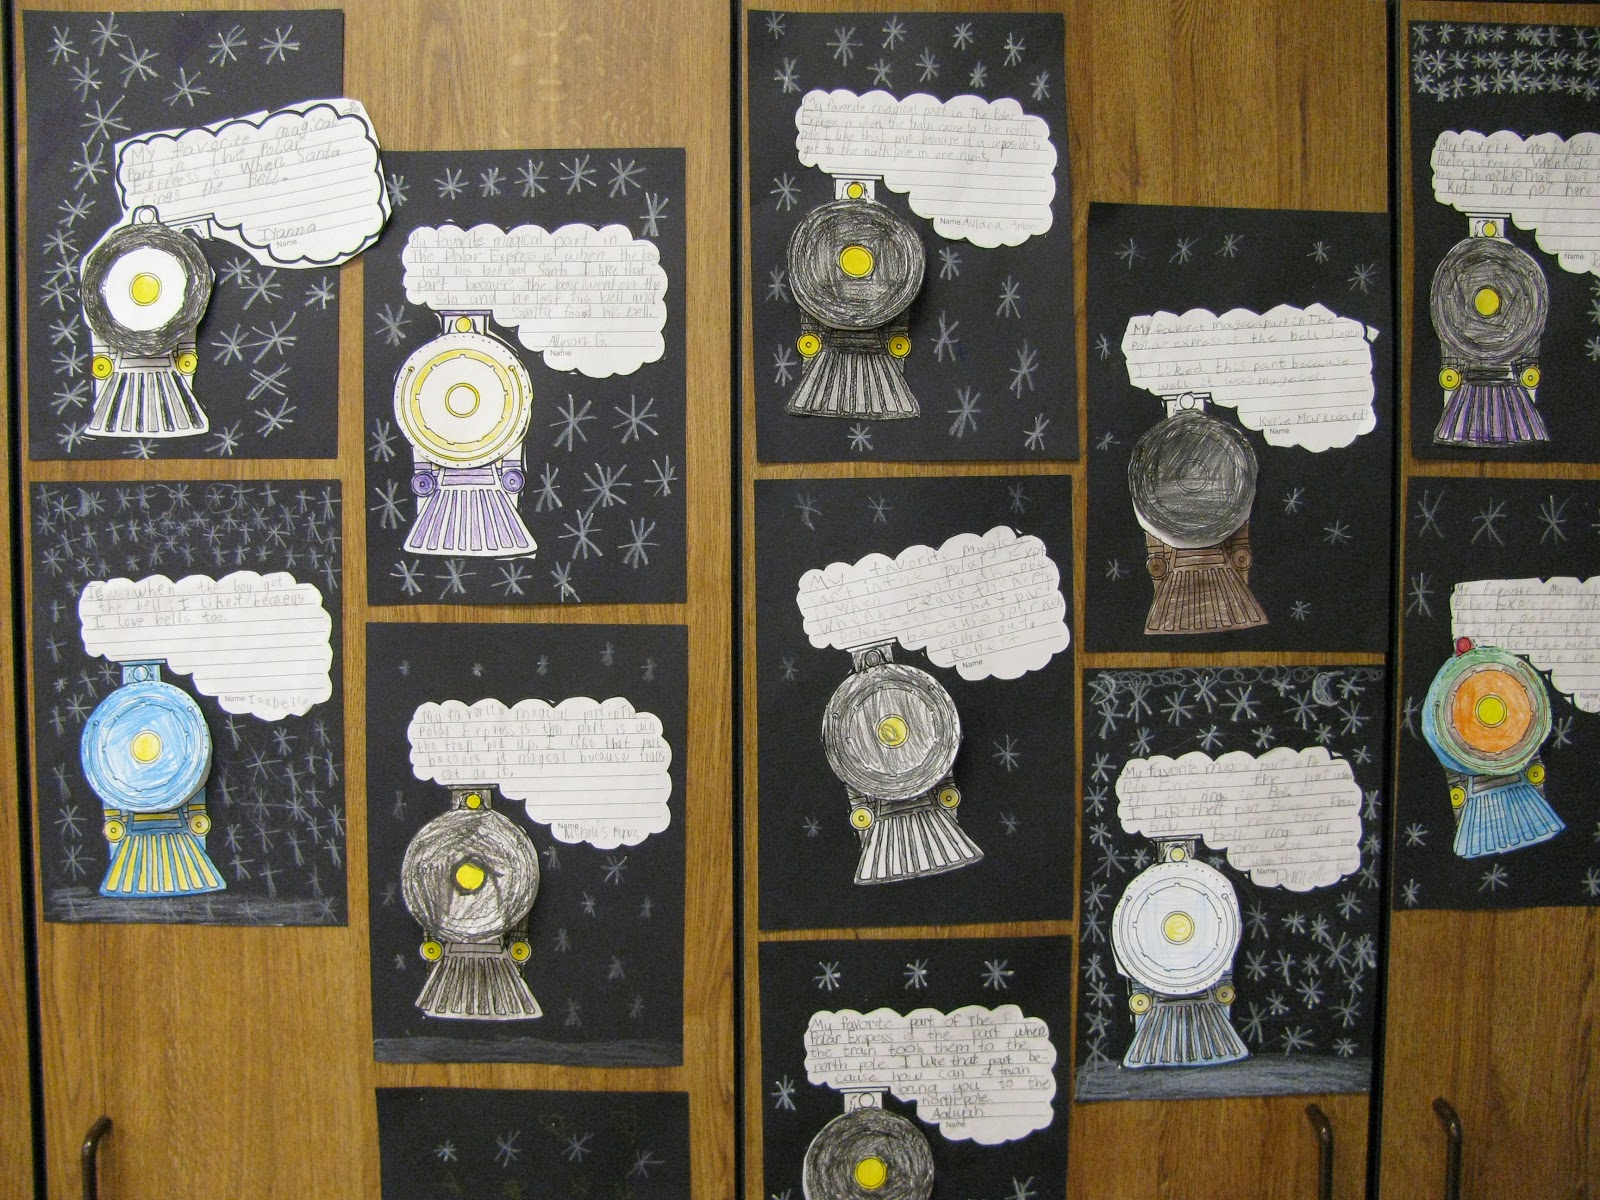 The students wrote about their favorite magical part of the polar